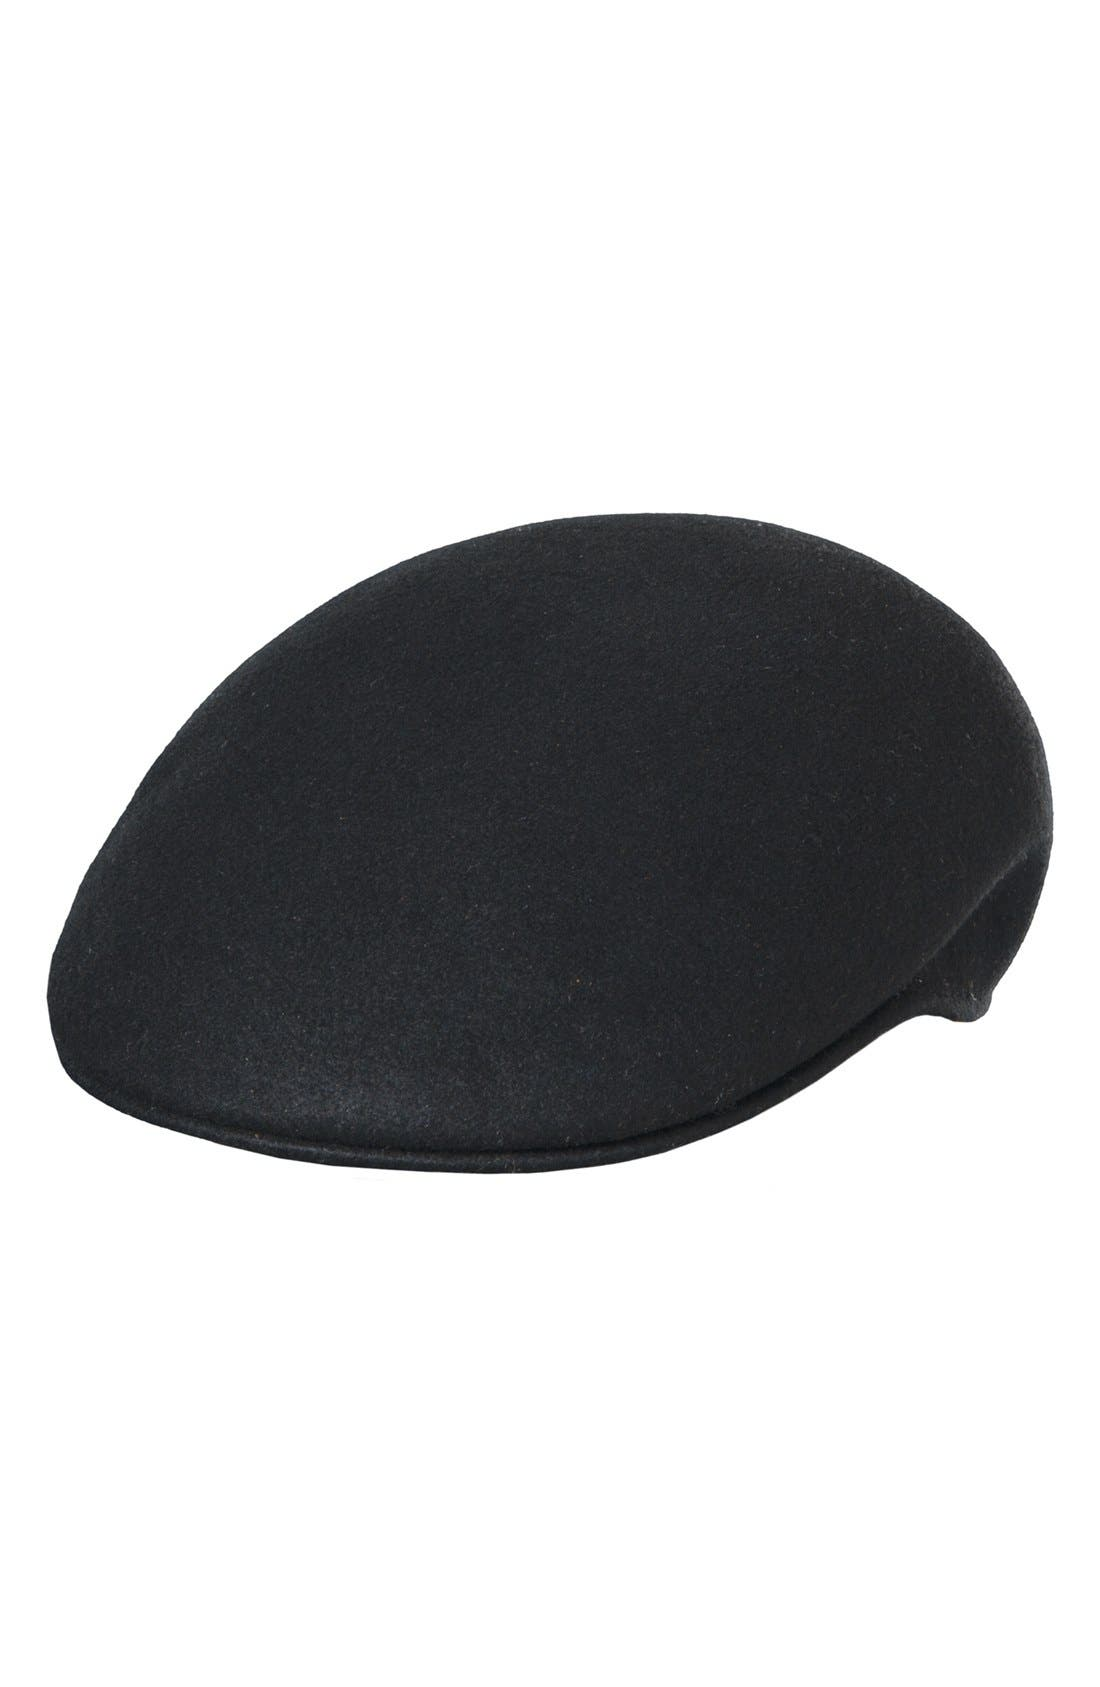 Alternate Image 1 Selected - Scala Classico Crushable Felt Driving Cap